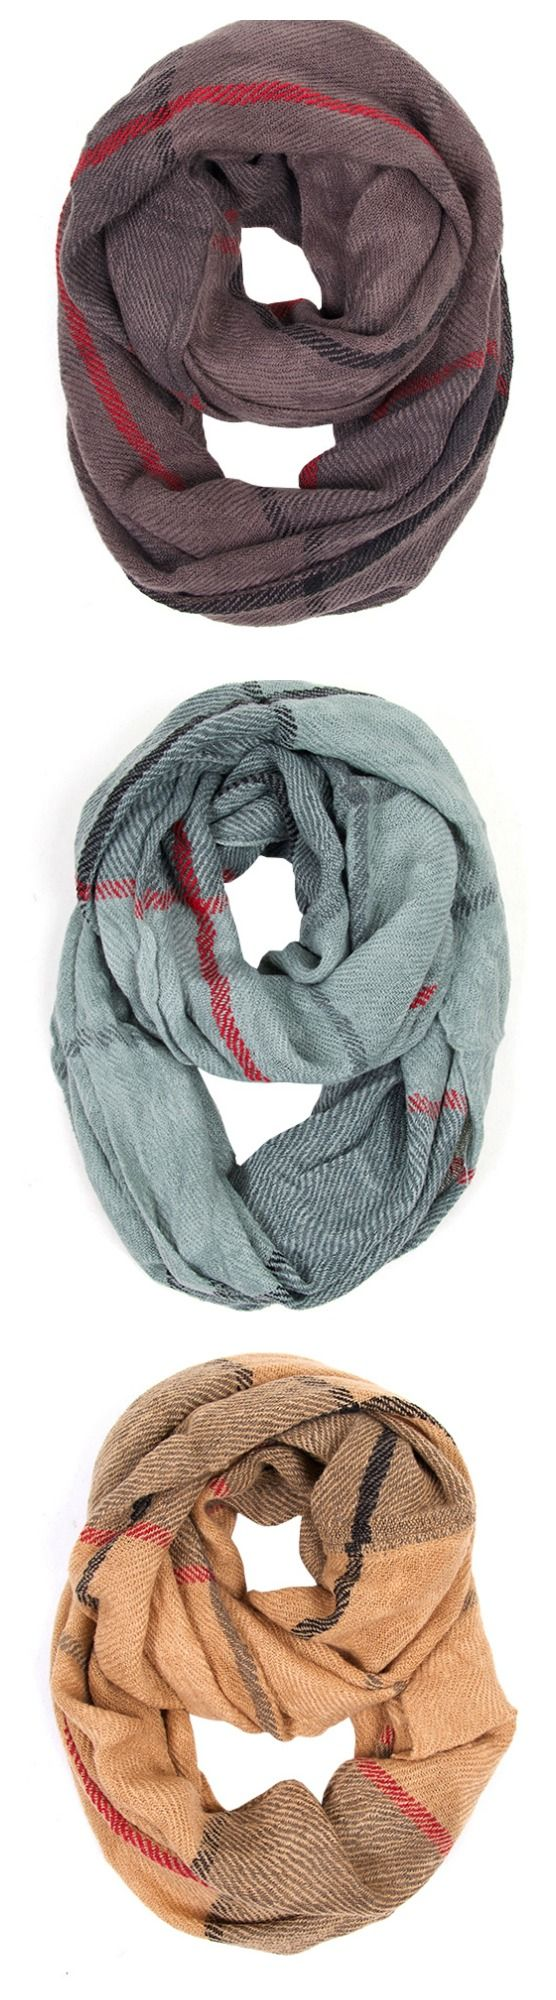 Fall fashion scarves. Classic check scarf in grey, mint and brown.